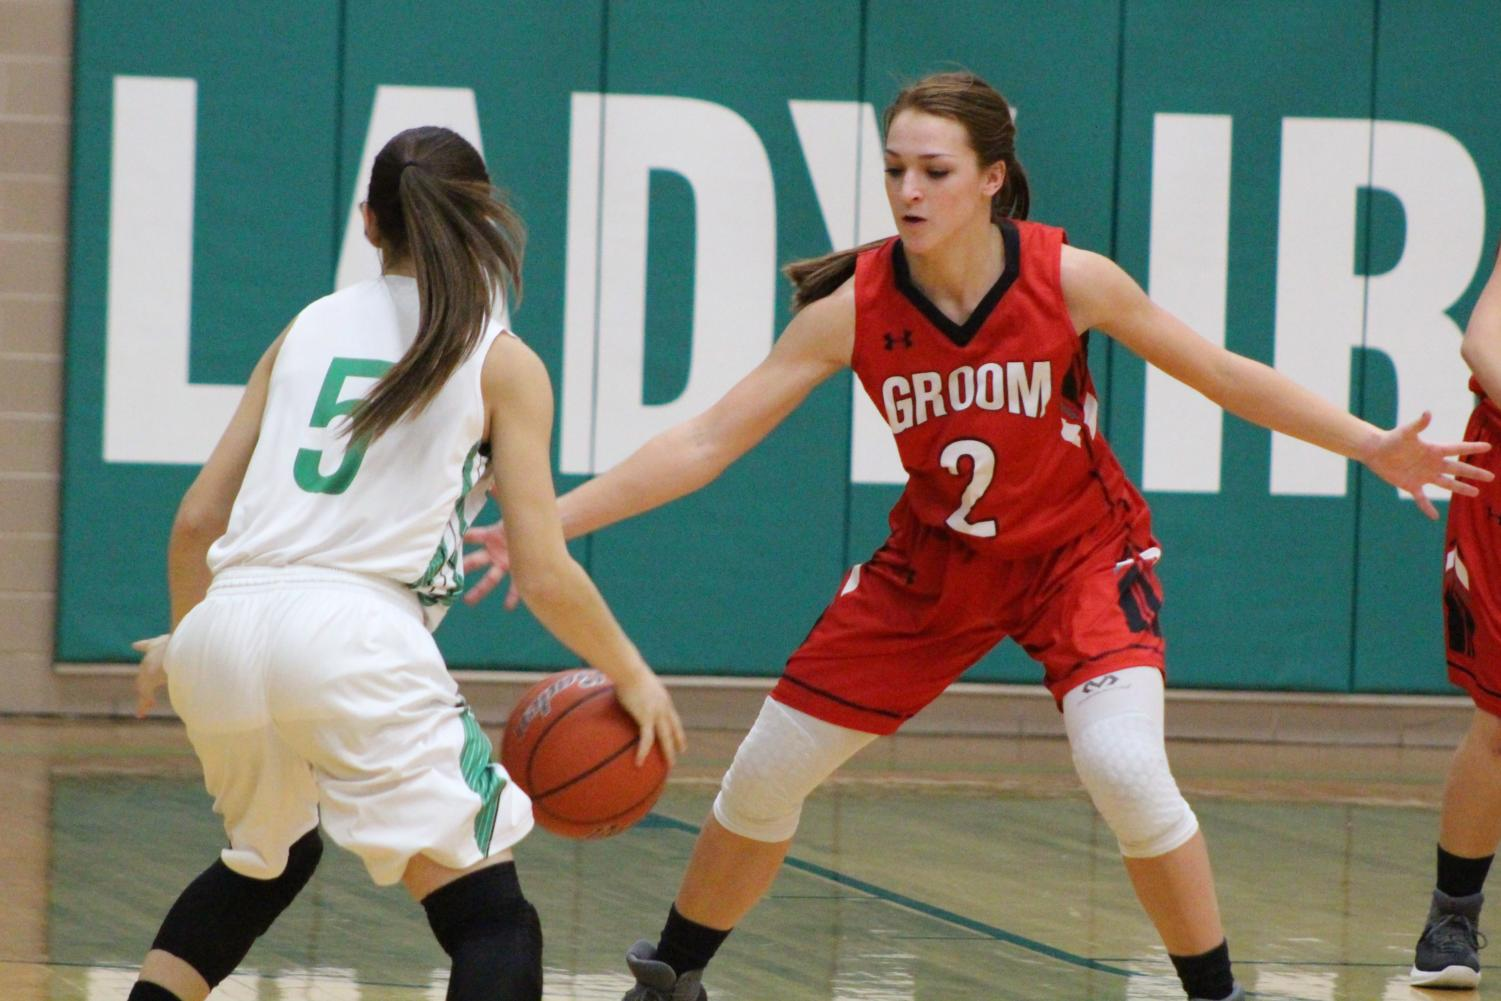 Junior basketball player Sydney Ritter plays defense against the Lady Irish during the Jan. 9 game against Shamrock. Groom won 56-43.